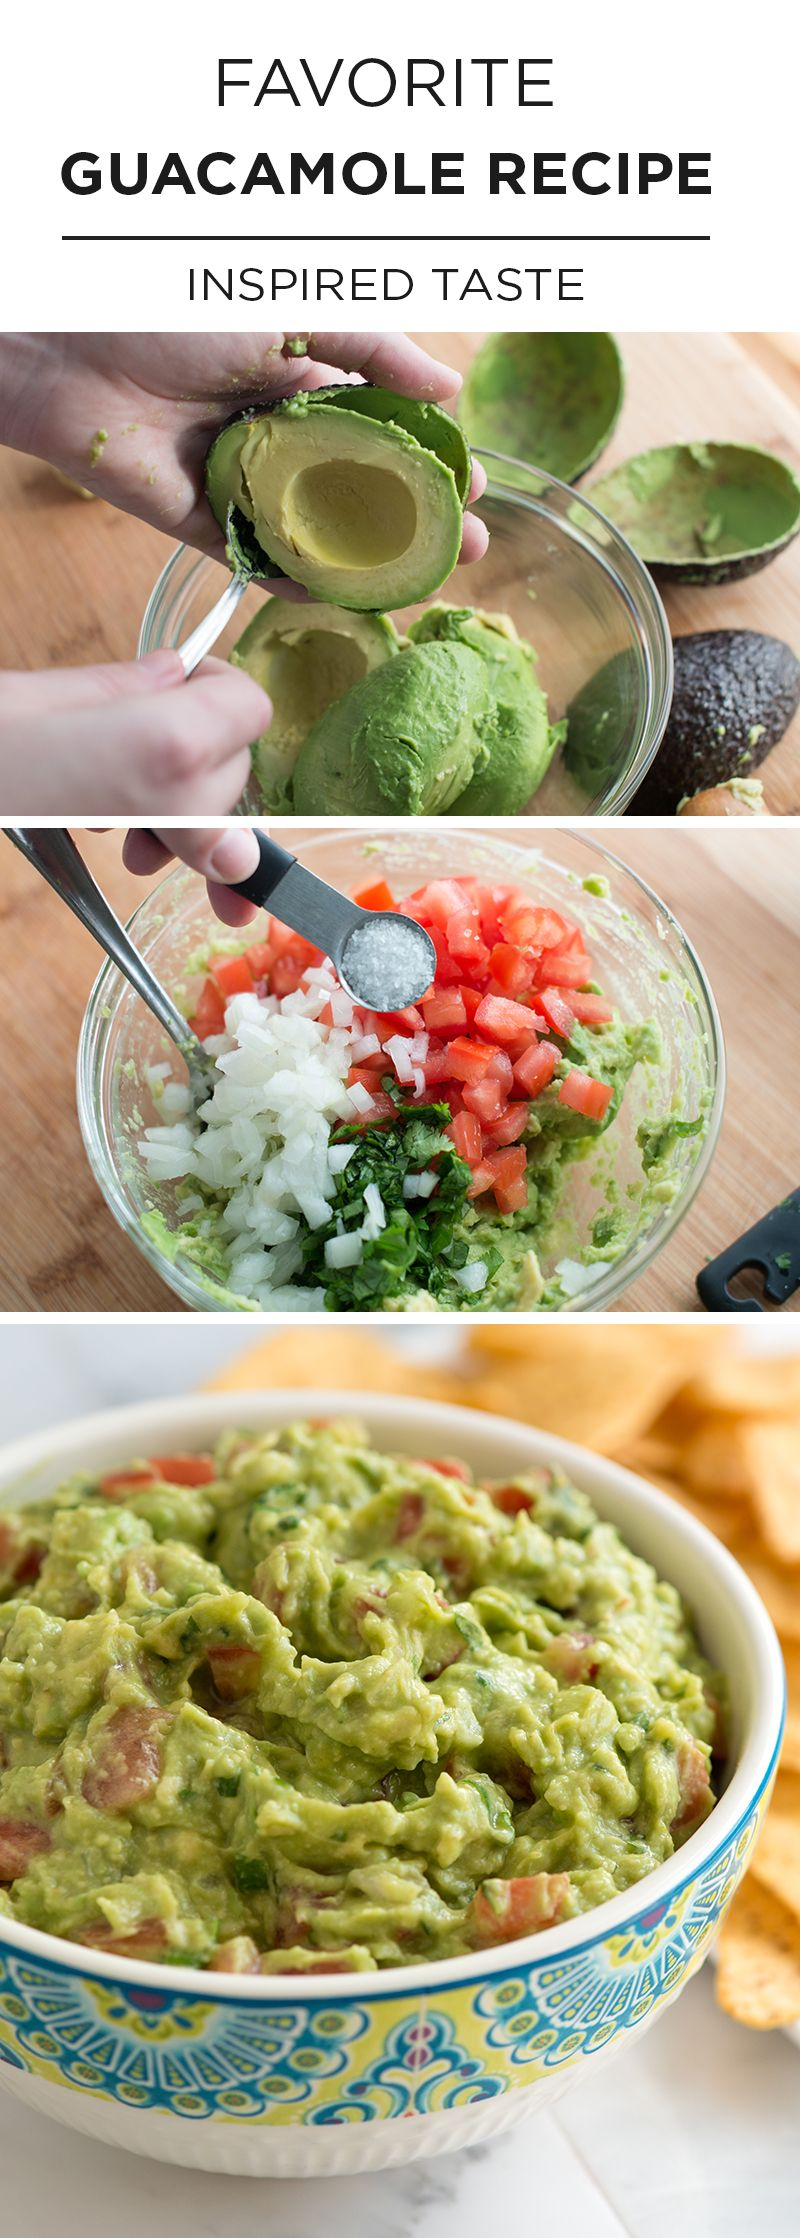 When we're entertaining we have a few recipes we always go to. Sure we'll also add something with a twist next to it, but we always include one of our staples. This simple guacamole recipe is one of those staples. It's easy, it's fresh and no matter what else we serve with it, it's always the first to go. With recipe video! From inspiredtaste.net   @inspiredtaste